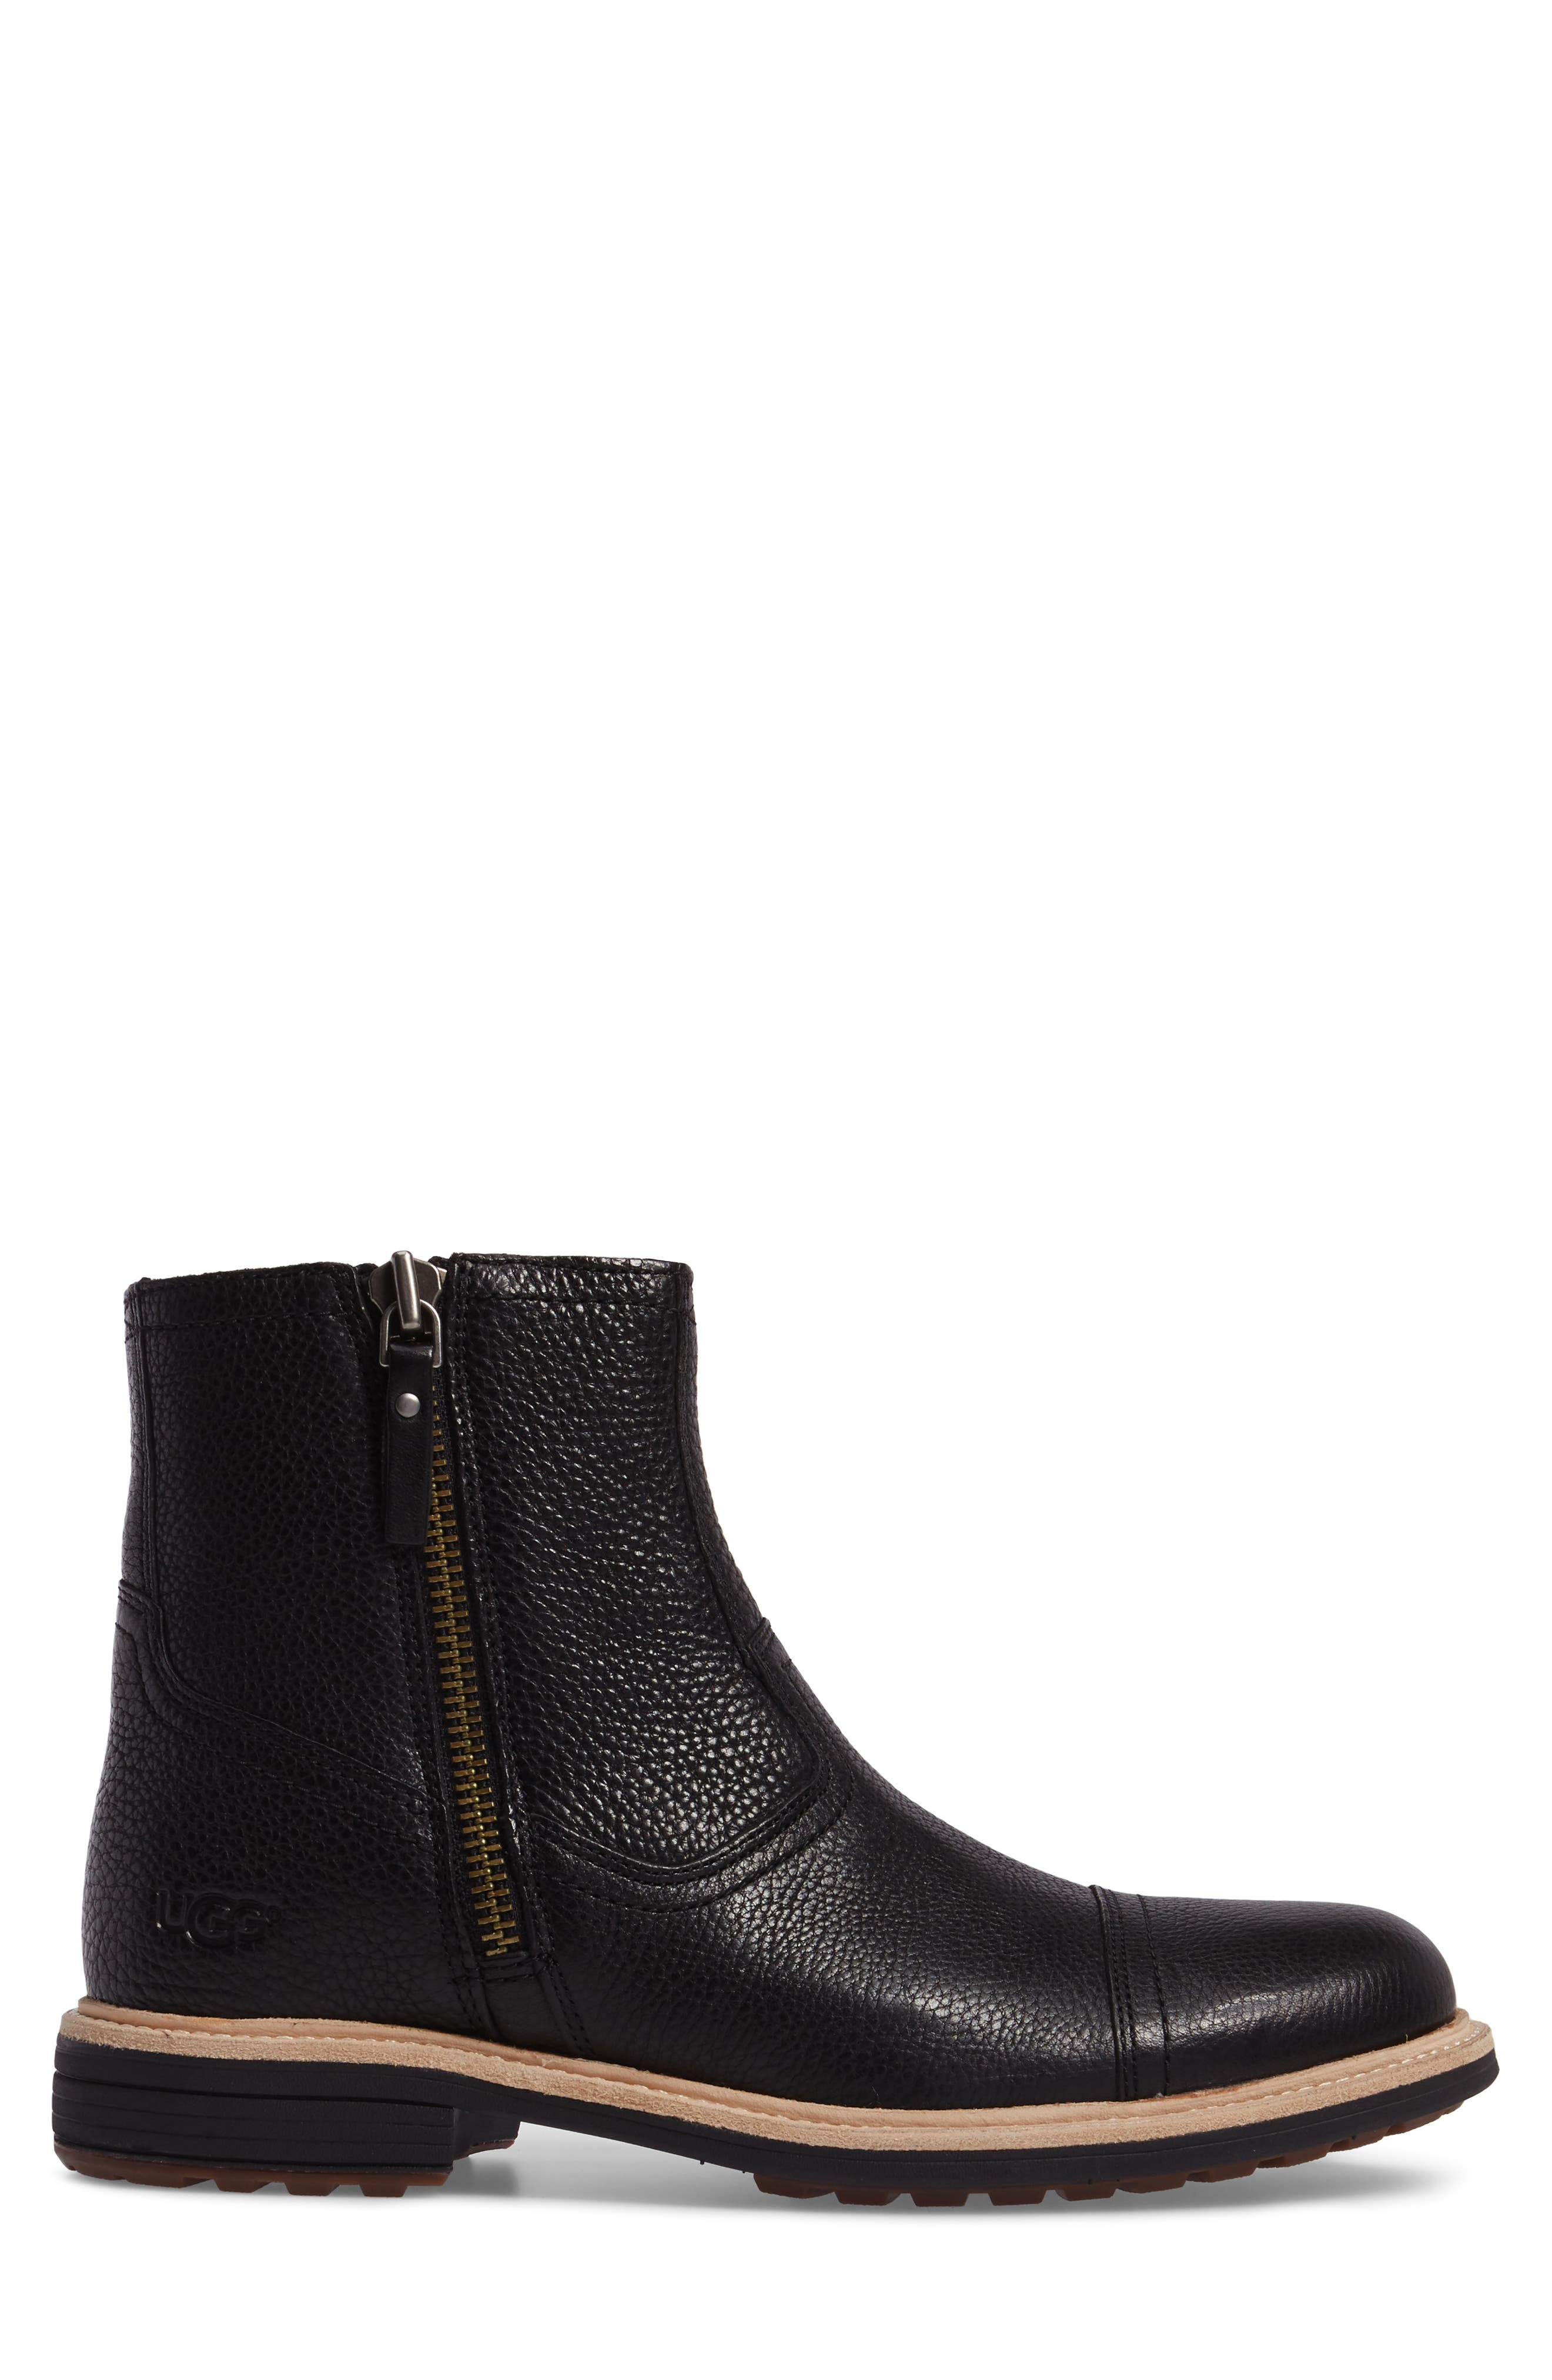 Dalvin Zip Boot with Genuine Shearling,                             Alternate thumbnail 3, color,                             BLACK